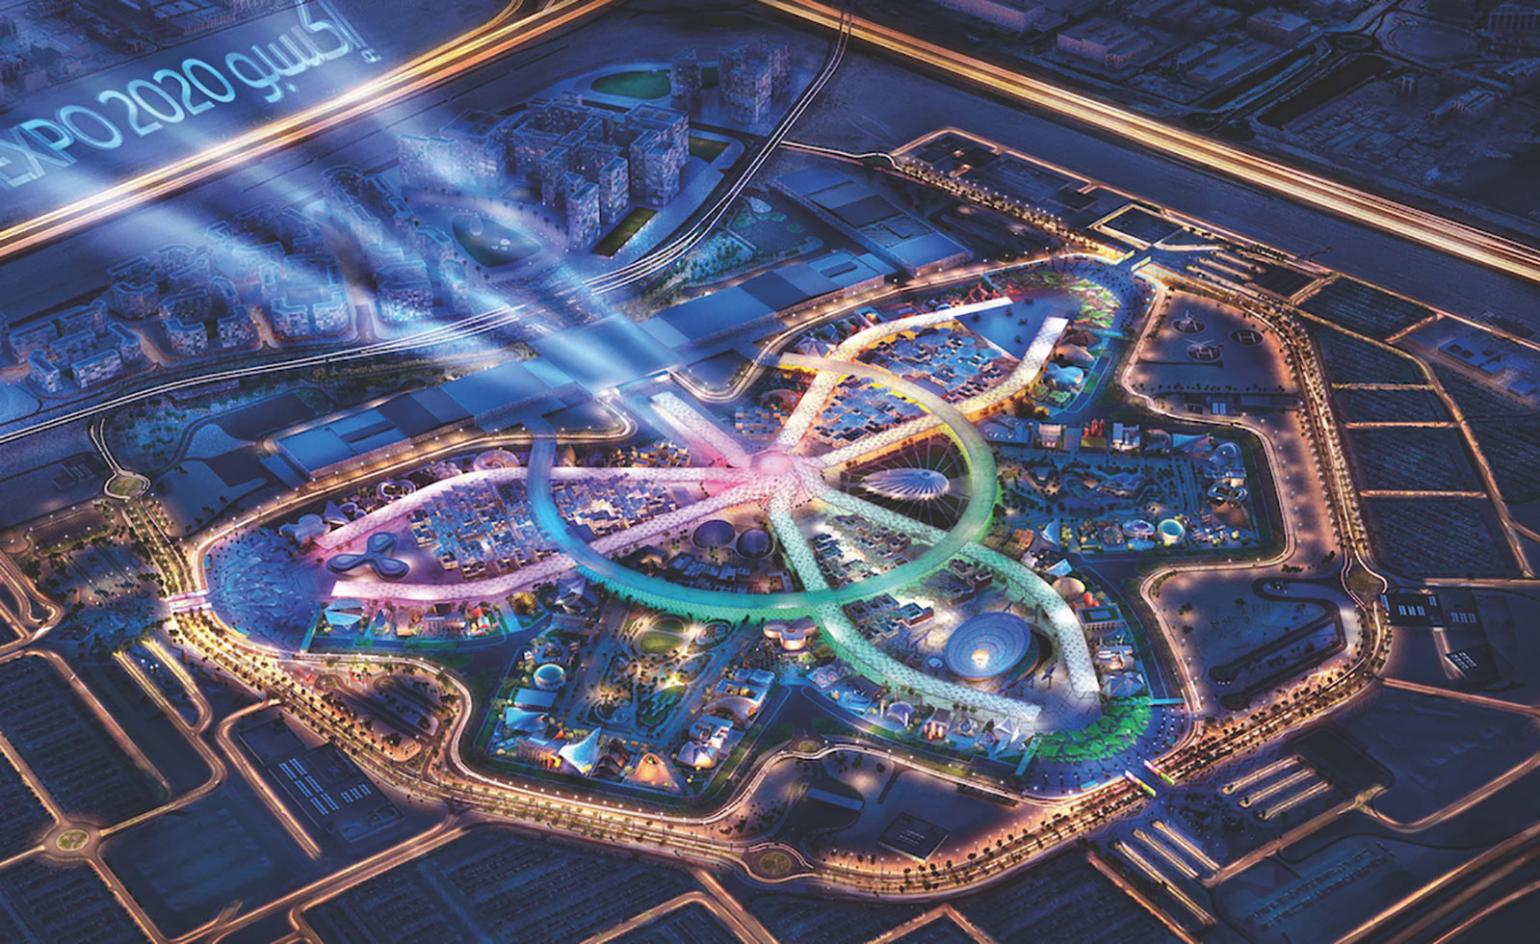 The search for the designer of the Dubai Expo 2020 UK Pavilion begins